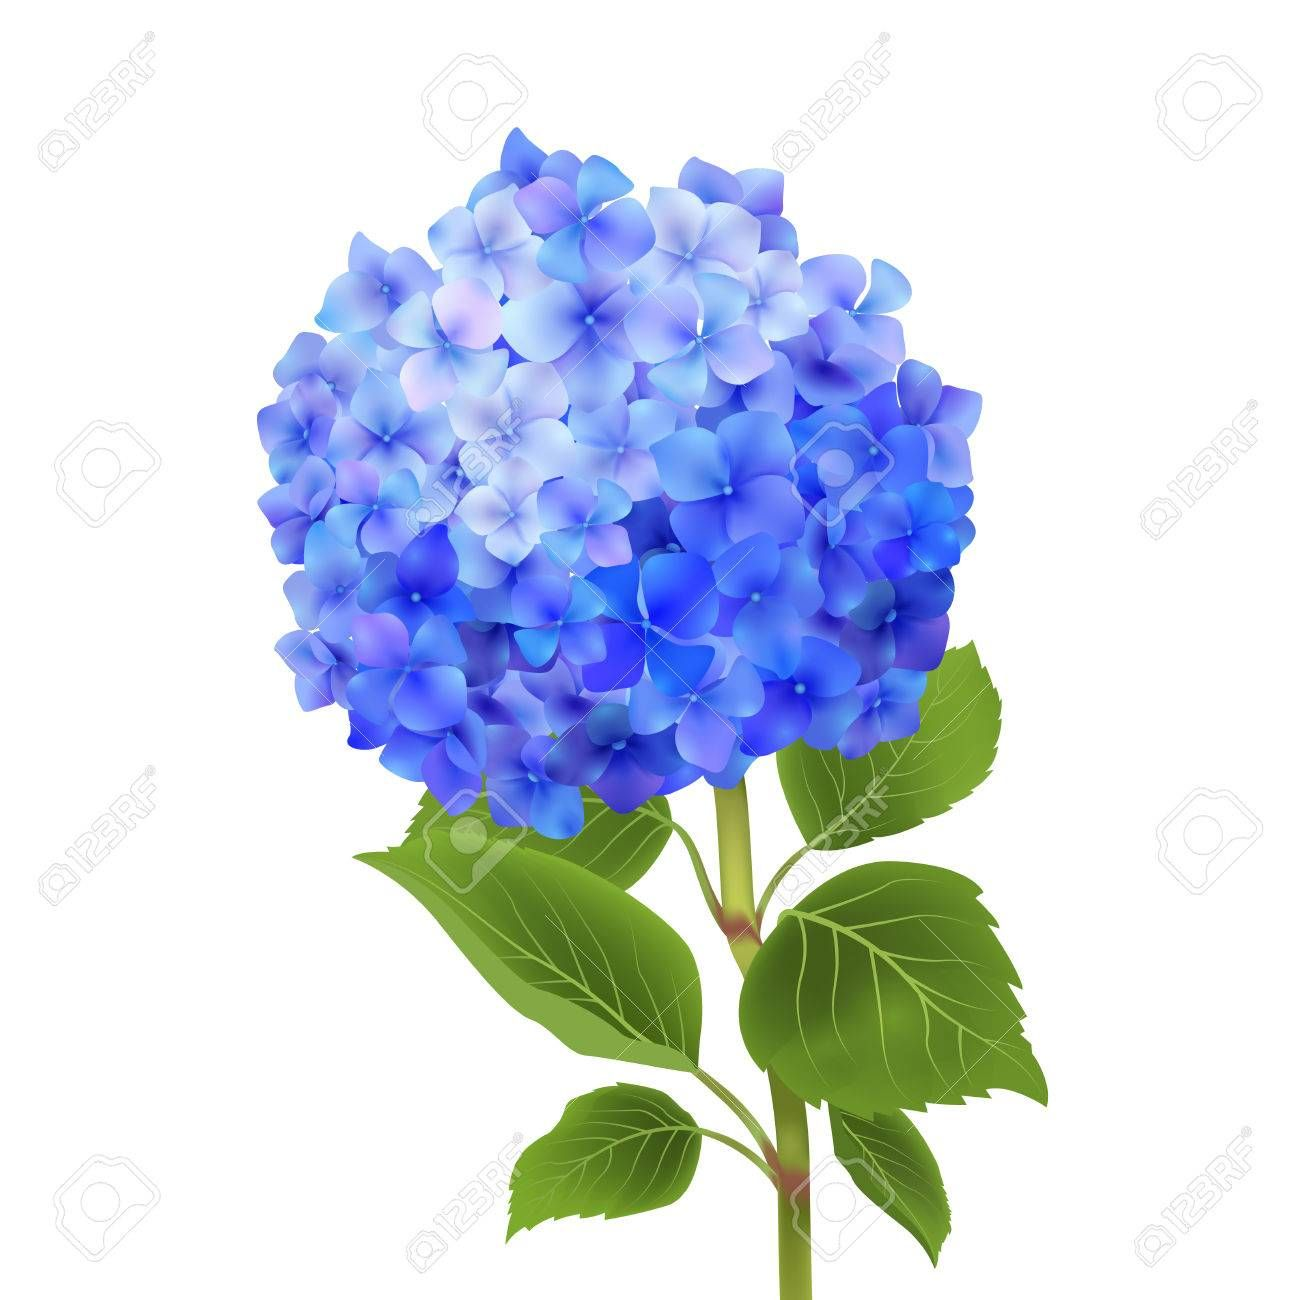 Realistic Blue Hydrangea Flower Isolated On White Background Vector Illustration Blue Hydrangea Flowers Blue Hydrangea Watercolor Flowers